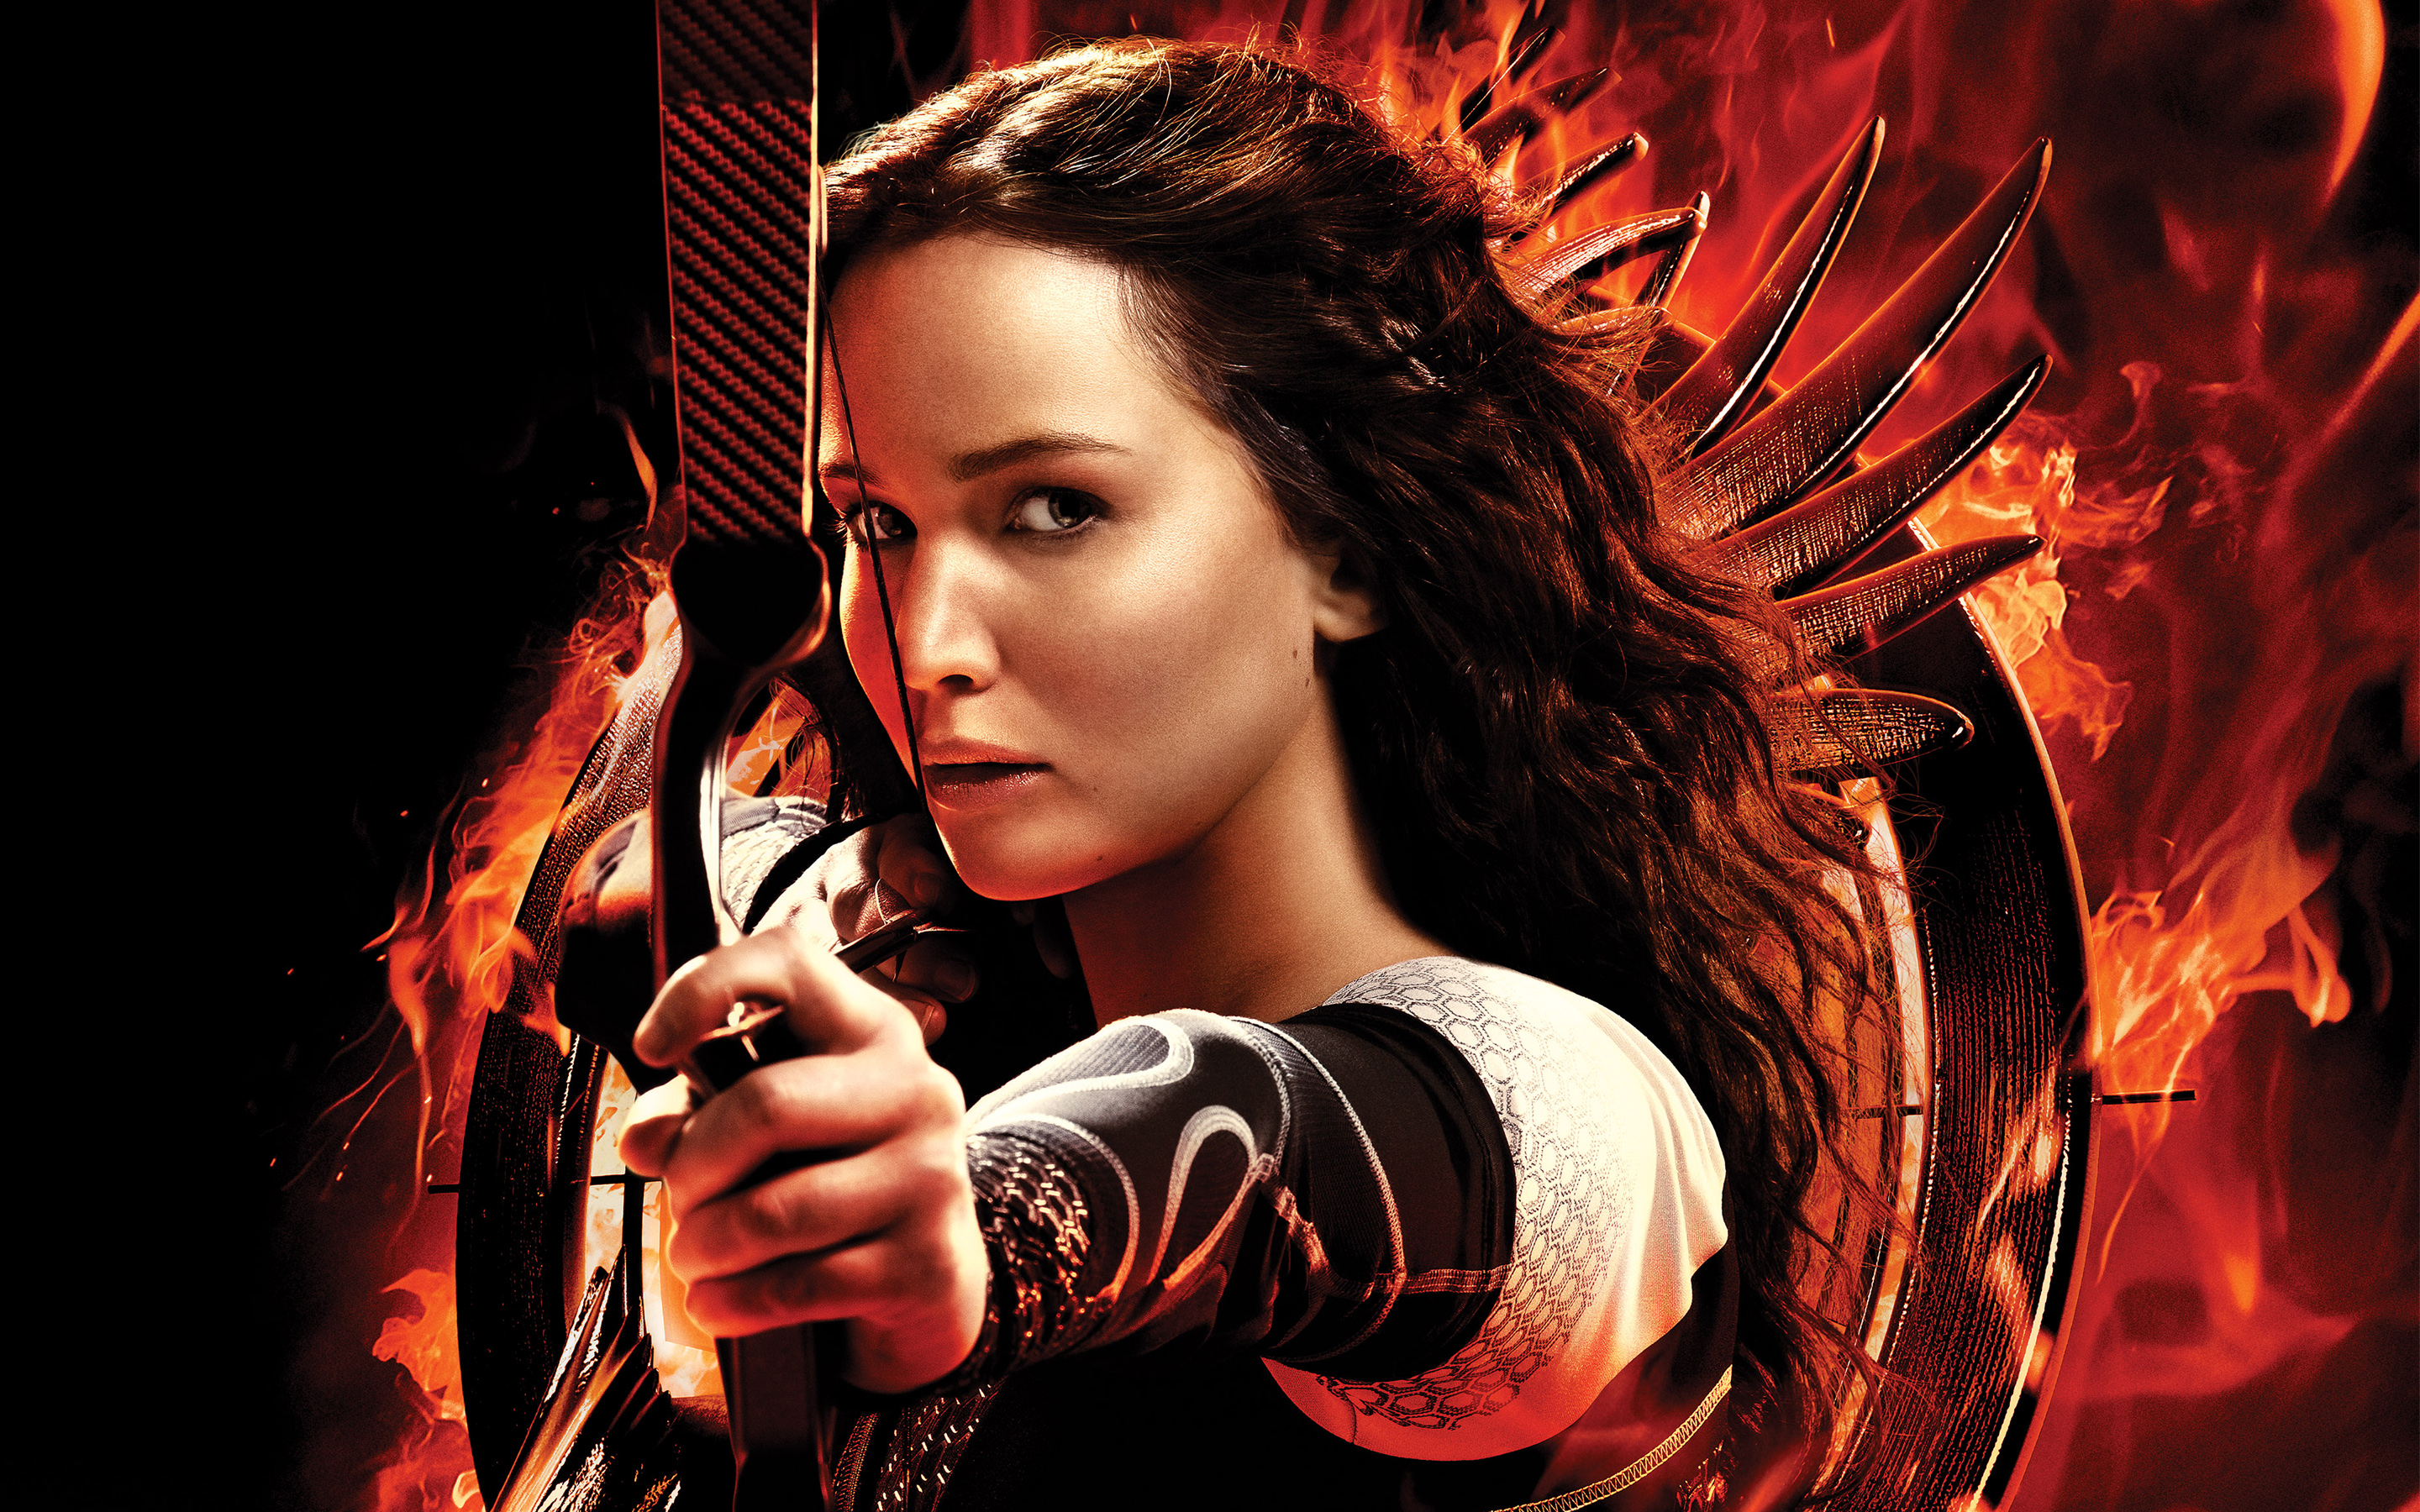 The Hunger Games Wallpapers For Desktop 2880x1800